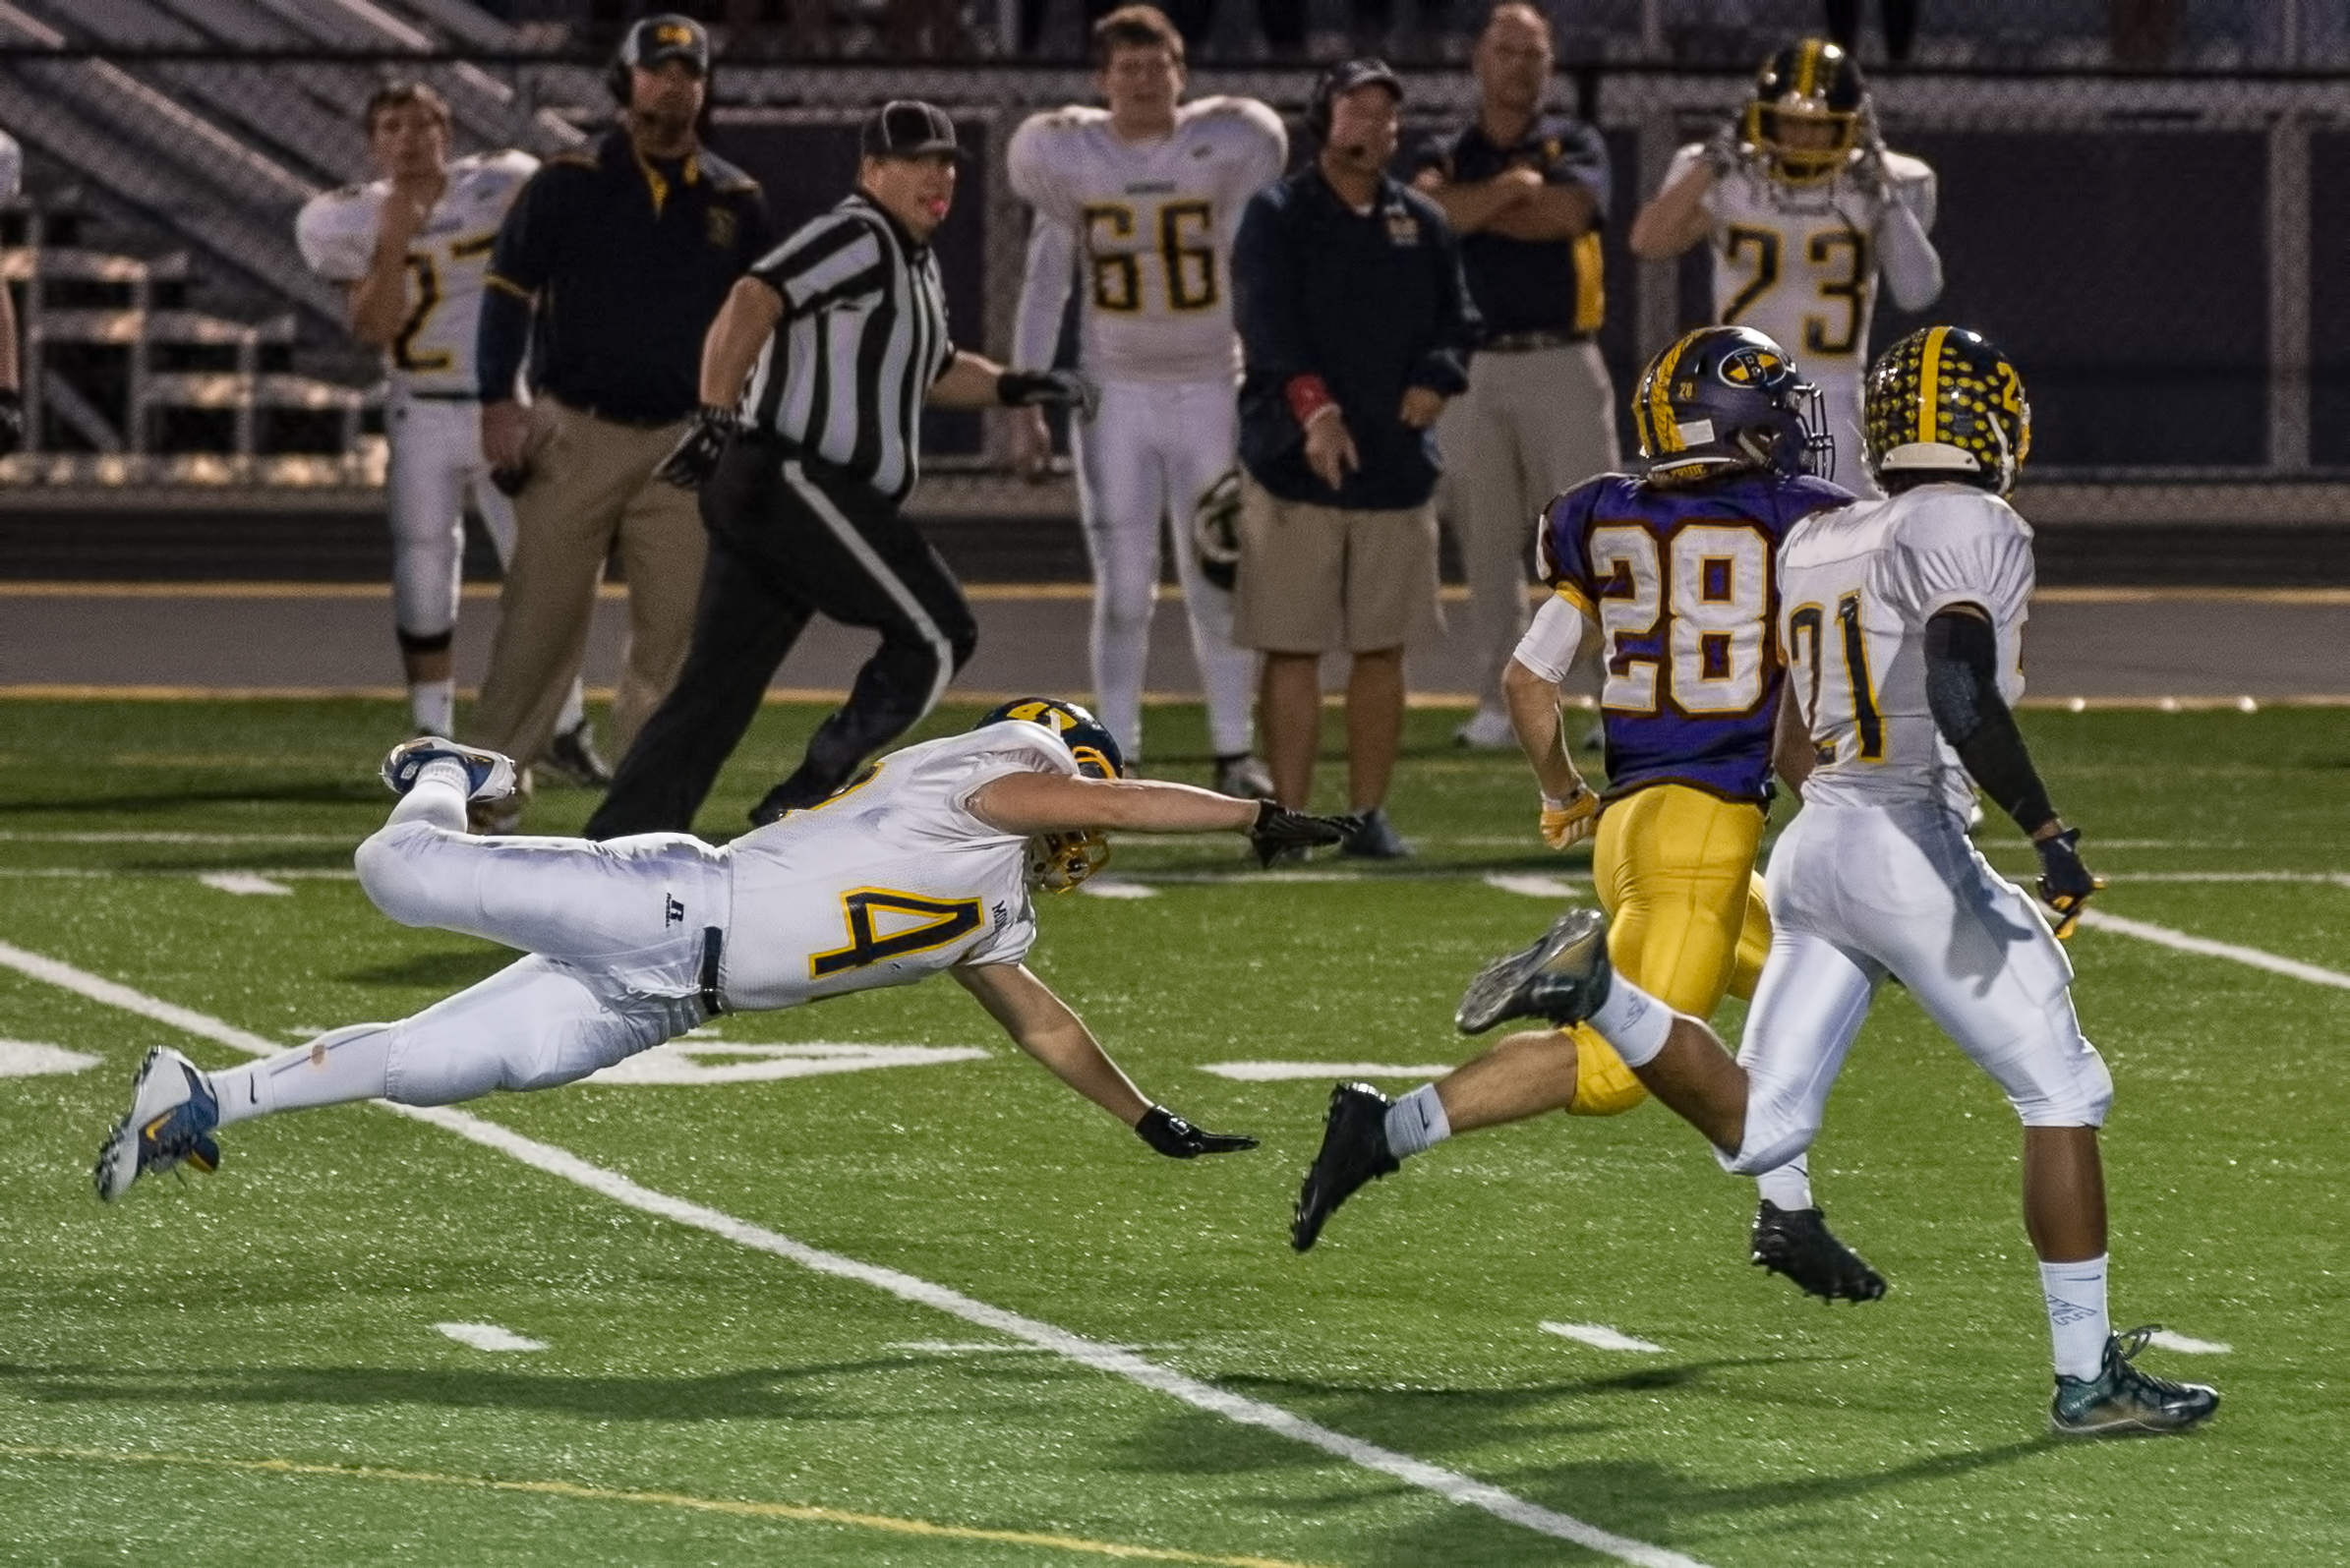 75 Yard Kickoff Return  Nikon D610 ISO 6400 200mm f/4.5 1/800 sec.